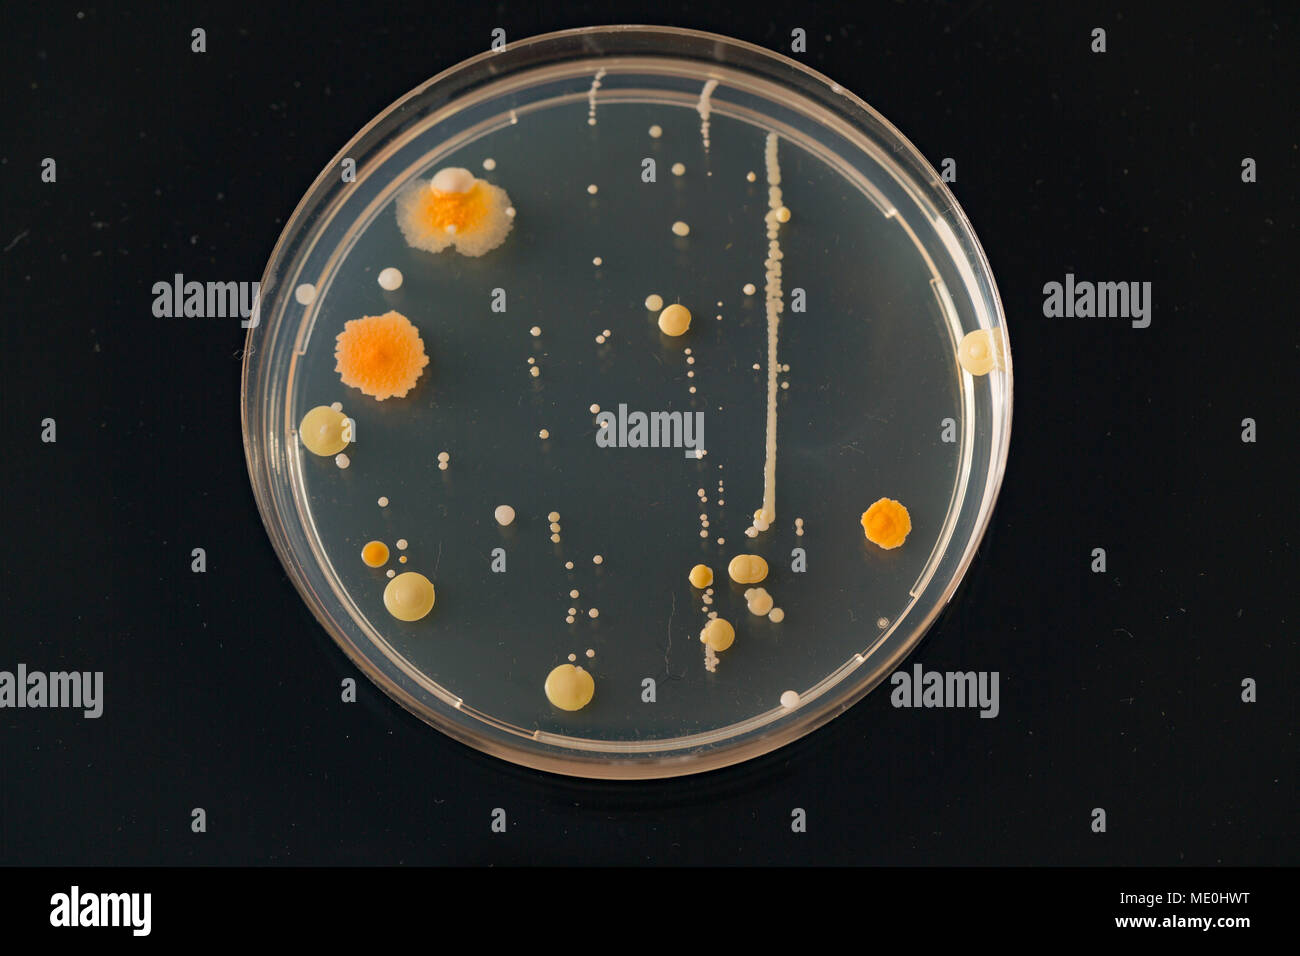 Cultures growing on Petri dish. - Stock Image